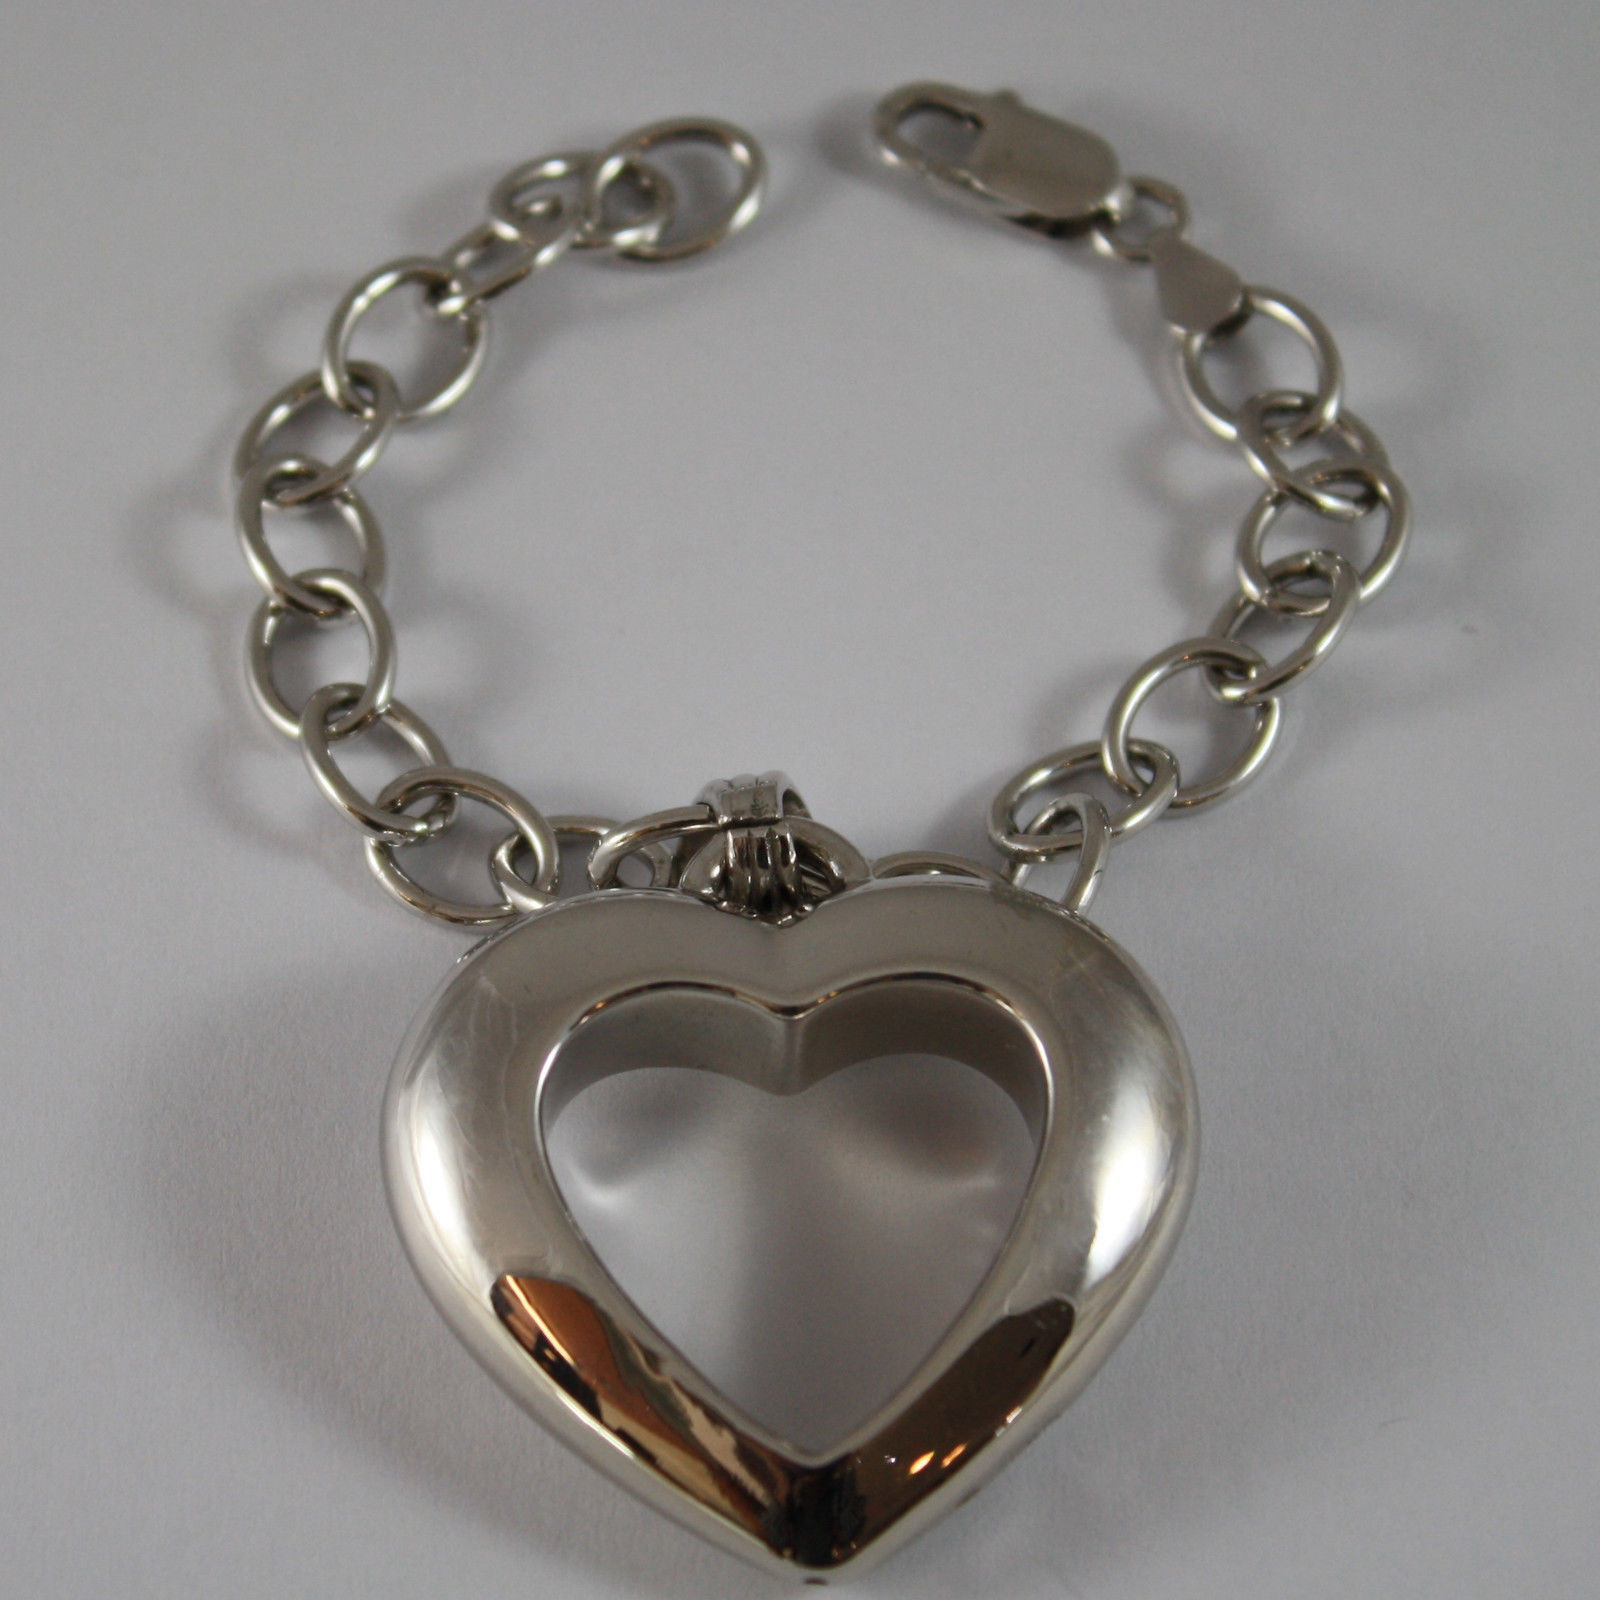 .925 RHODIUM SILVER BRACELET WITH BIG HEART